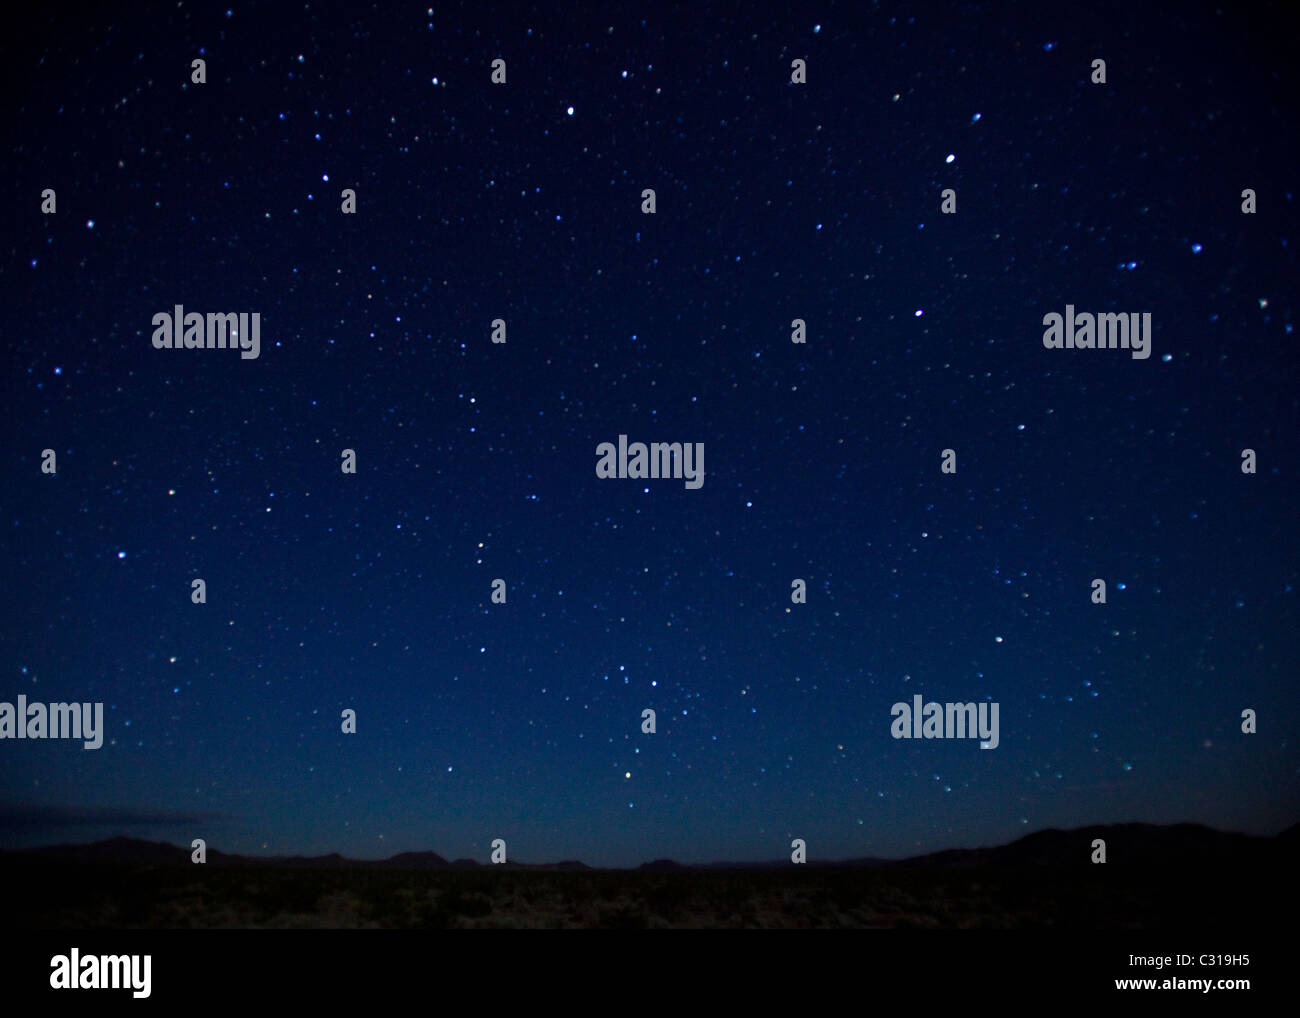 Stars in night sky - Stock Image